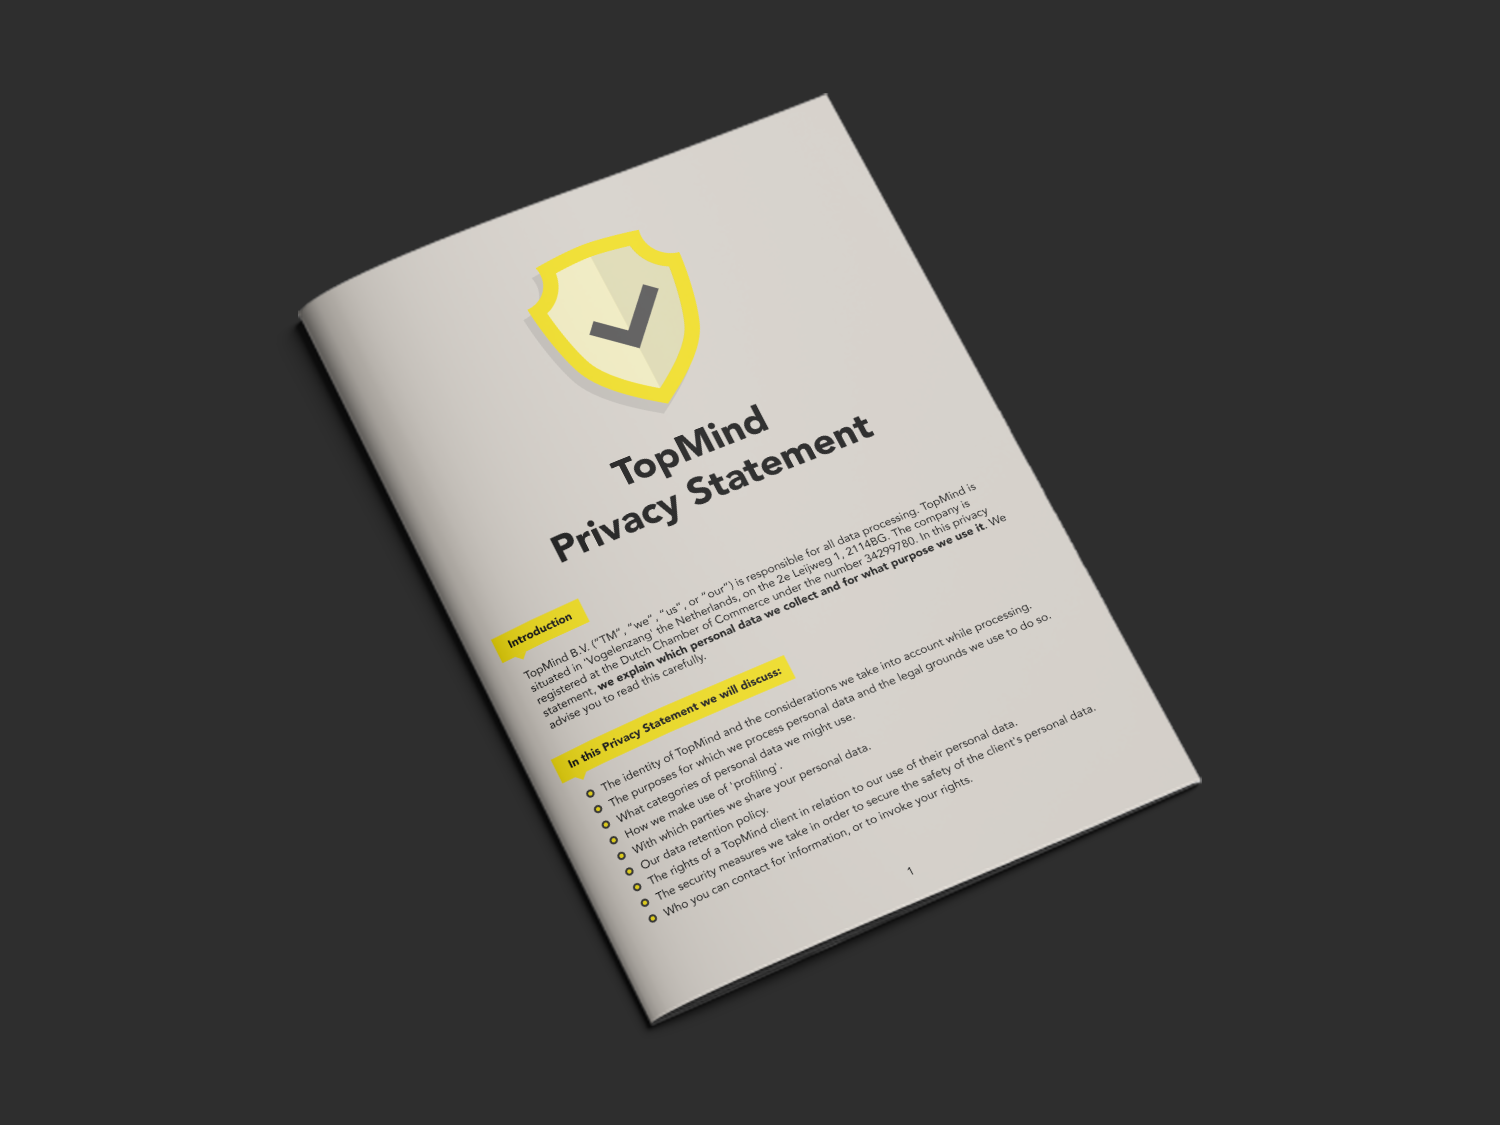 topmind-privacystatement-mockup-v2.png